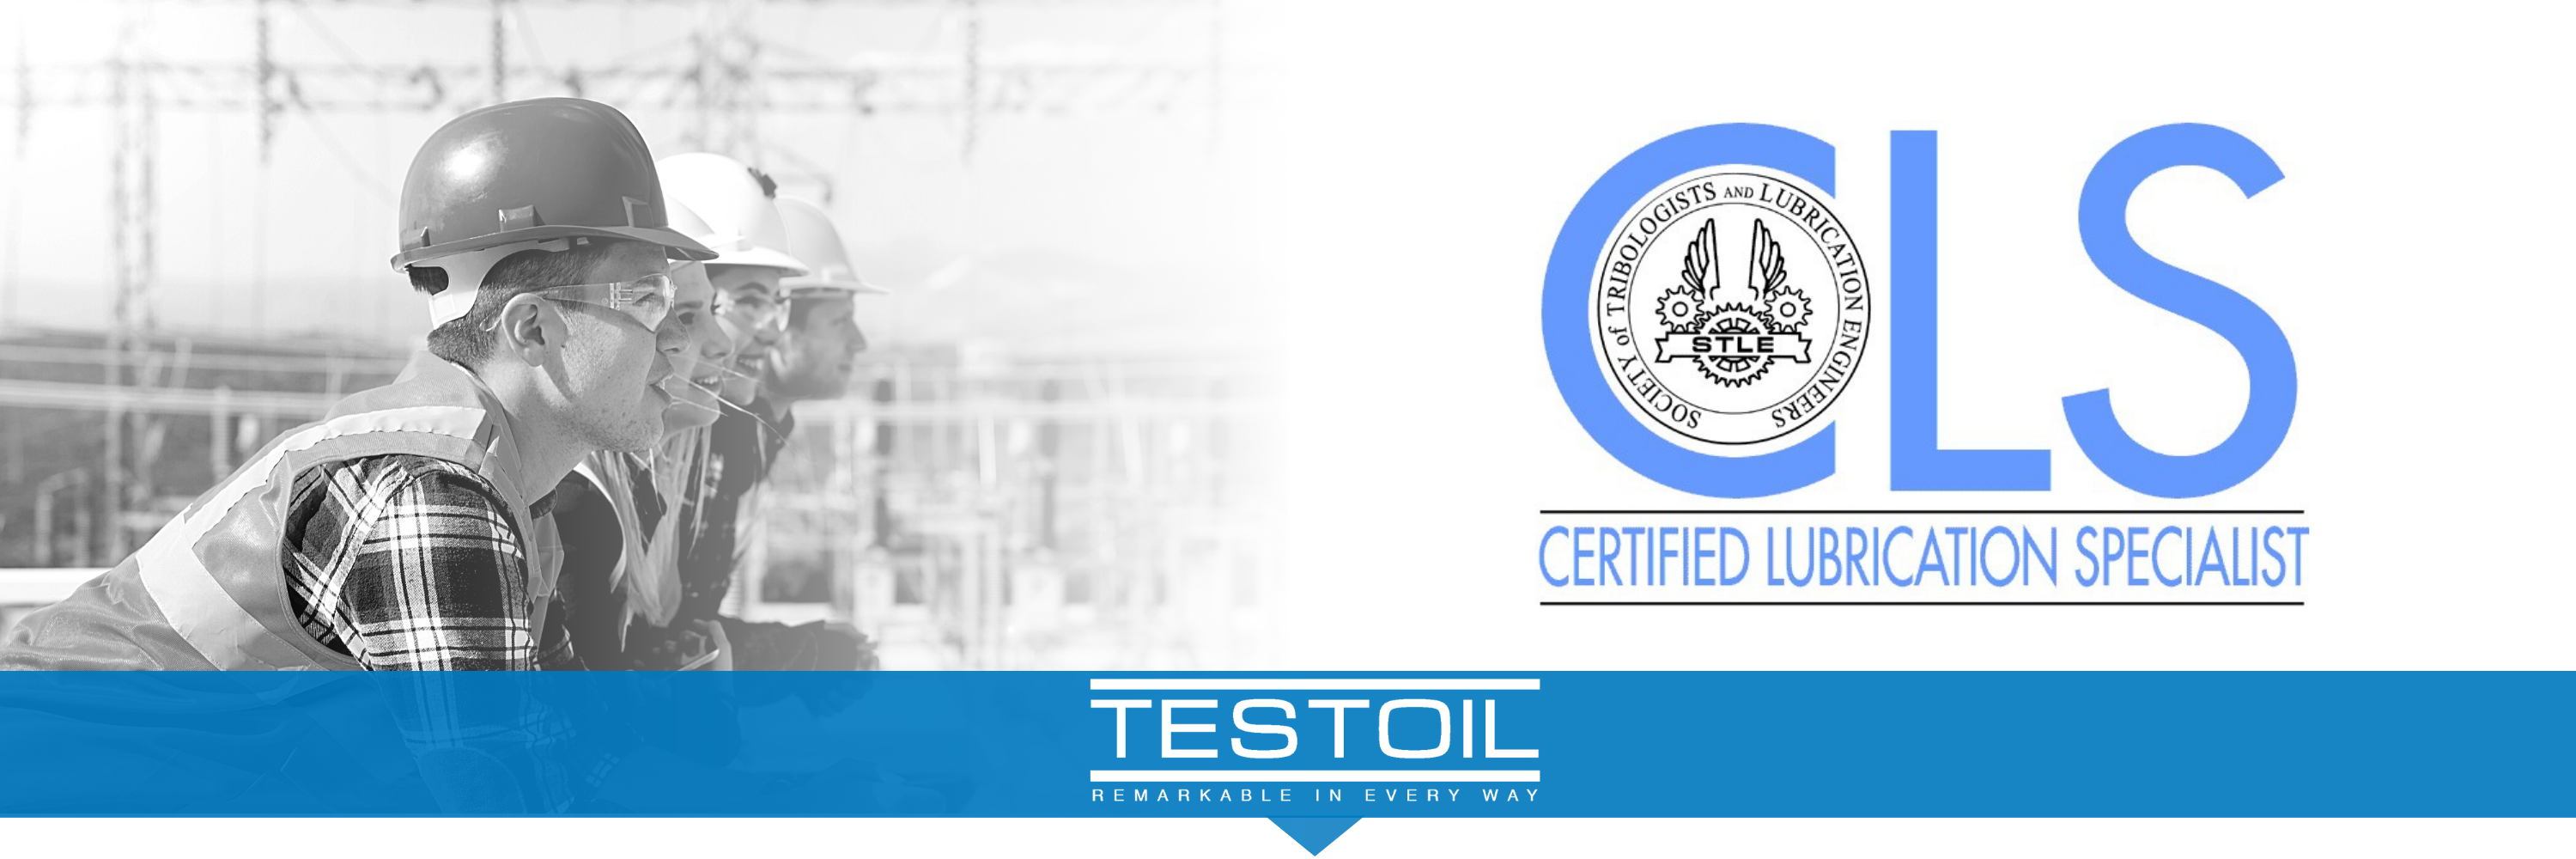 stle certified lubrication specialist training